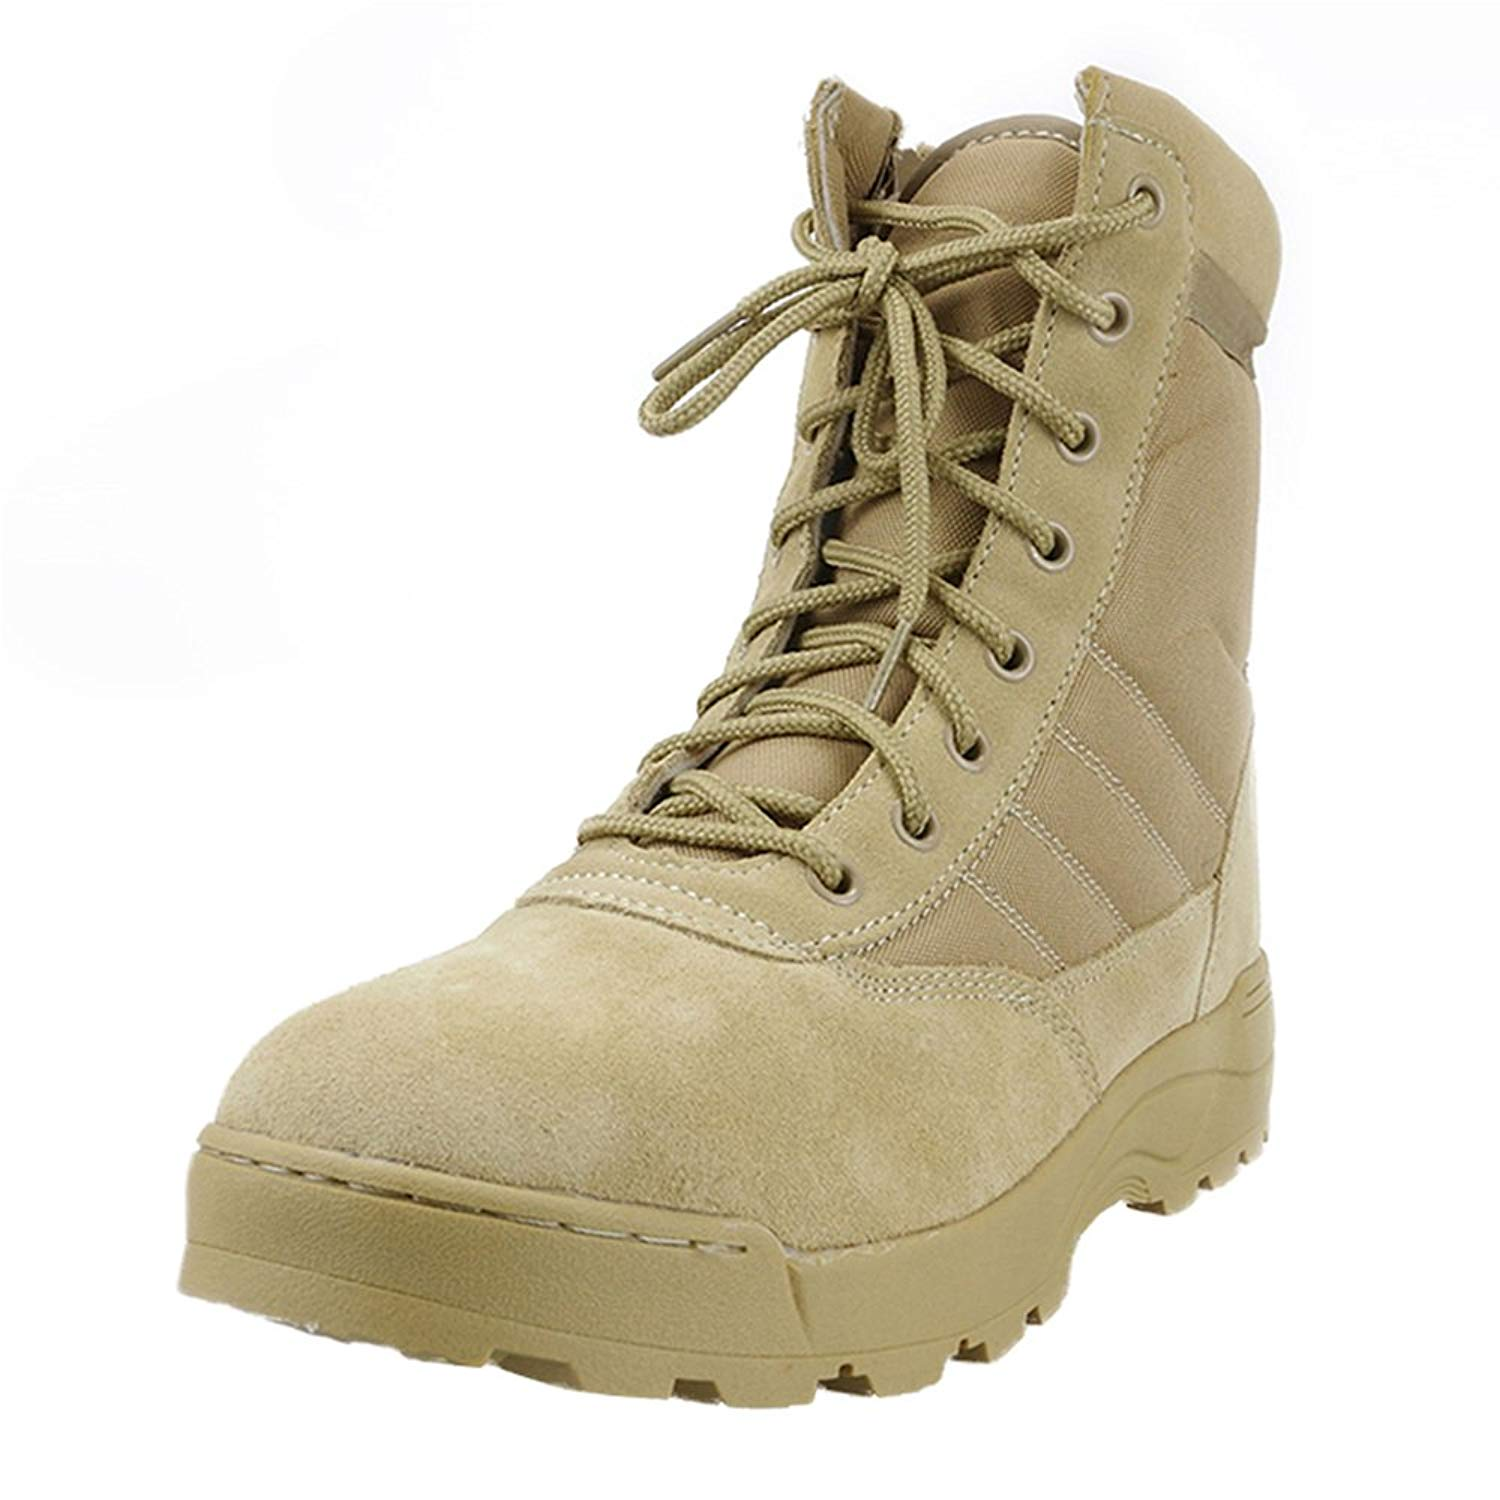 bac5169fe285 Get Quotations · Wonvatu Military Tactical Boots Side Zipper Army Boots  Breathable Military Jungle Boots for Men Women